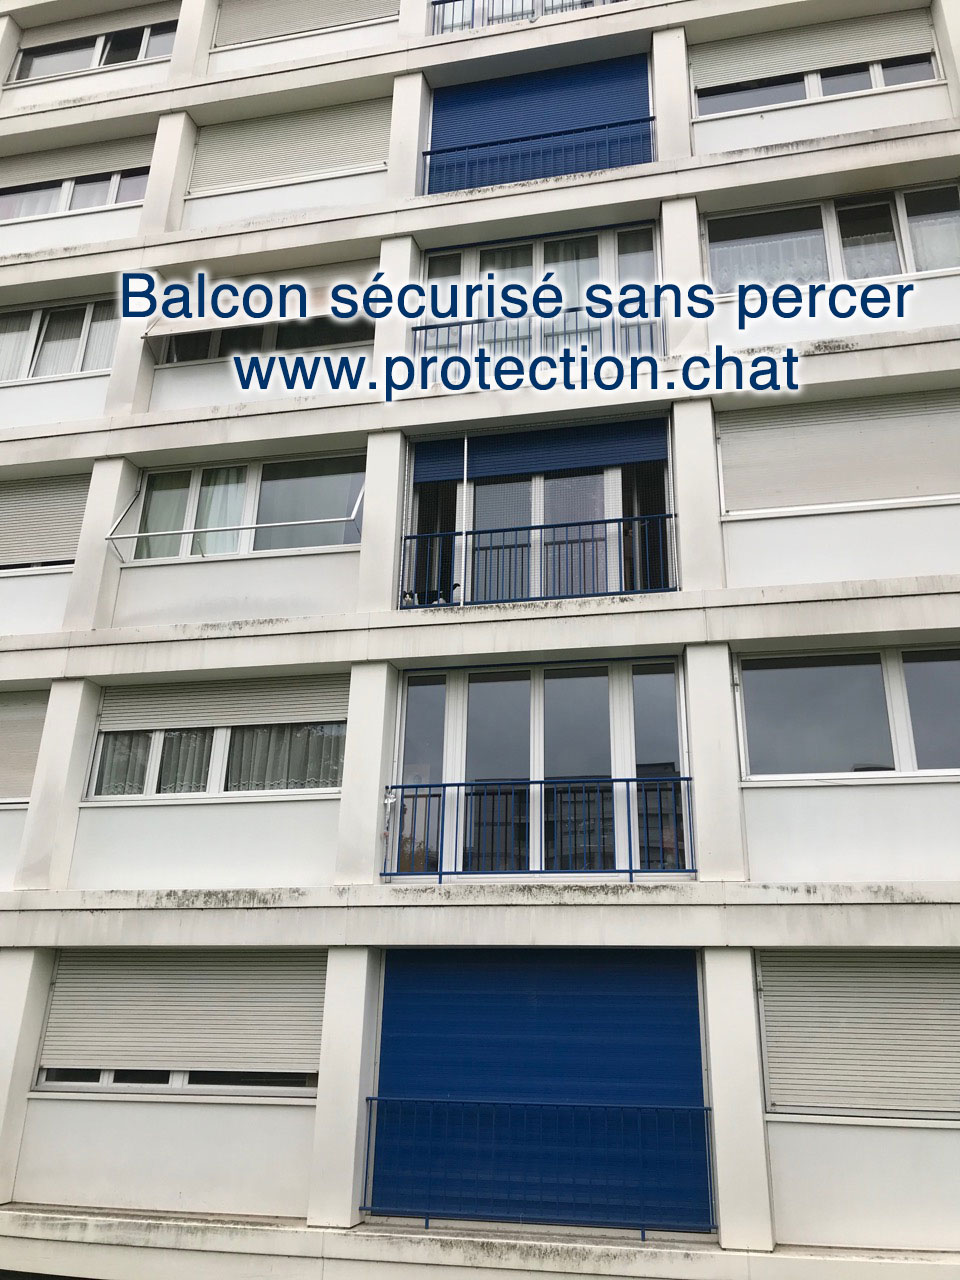 protection_chats_cadre_balcon_sans-percer-6